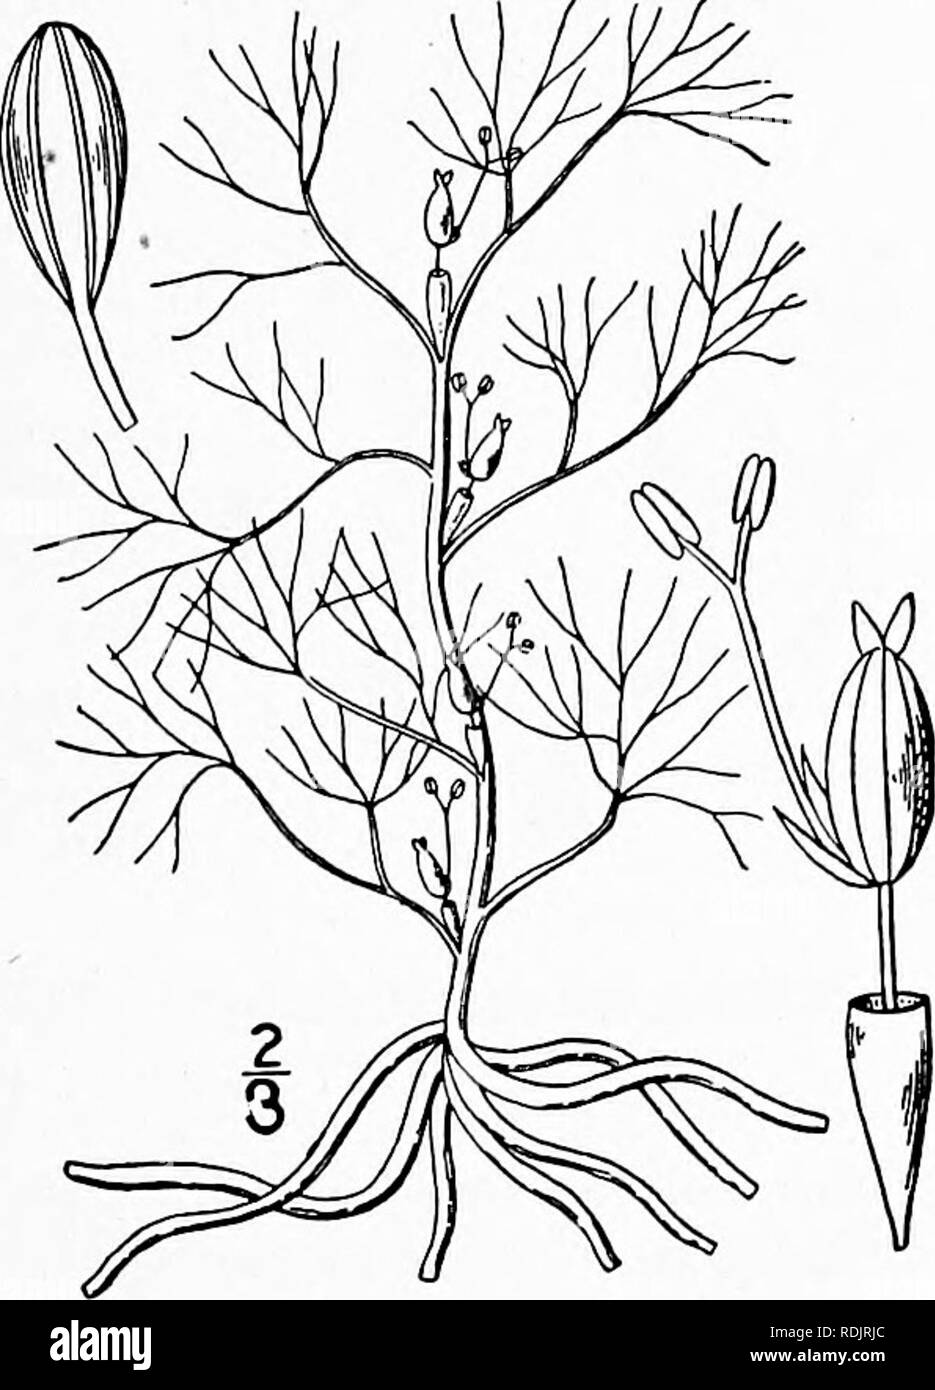 . An illustrated flora of the northern United States, Canada and the British possessions, from Newfoundland to the parallel of the southern boundary of Virginia, and from the Atlantic Ocean westward to the 102d meridian. Botany; Botany. Genus i. RIVER-WEED FAMILY. 205 Family 43. PODOSTEMACEAE Lindl. Nat. Syst. Ed. 2, 190. 1836. River-weed Family. Small aquatic fresh-water mostly annual fleshy herbs, the leaves usually poorly dififerentiated from the stem, the whole structure commonly resembling the thallus of an alga or hepatic, the small usually perfect flowers devoid of any perianth and subt - Stock Image